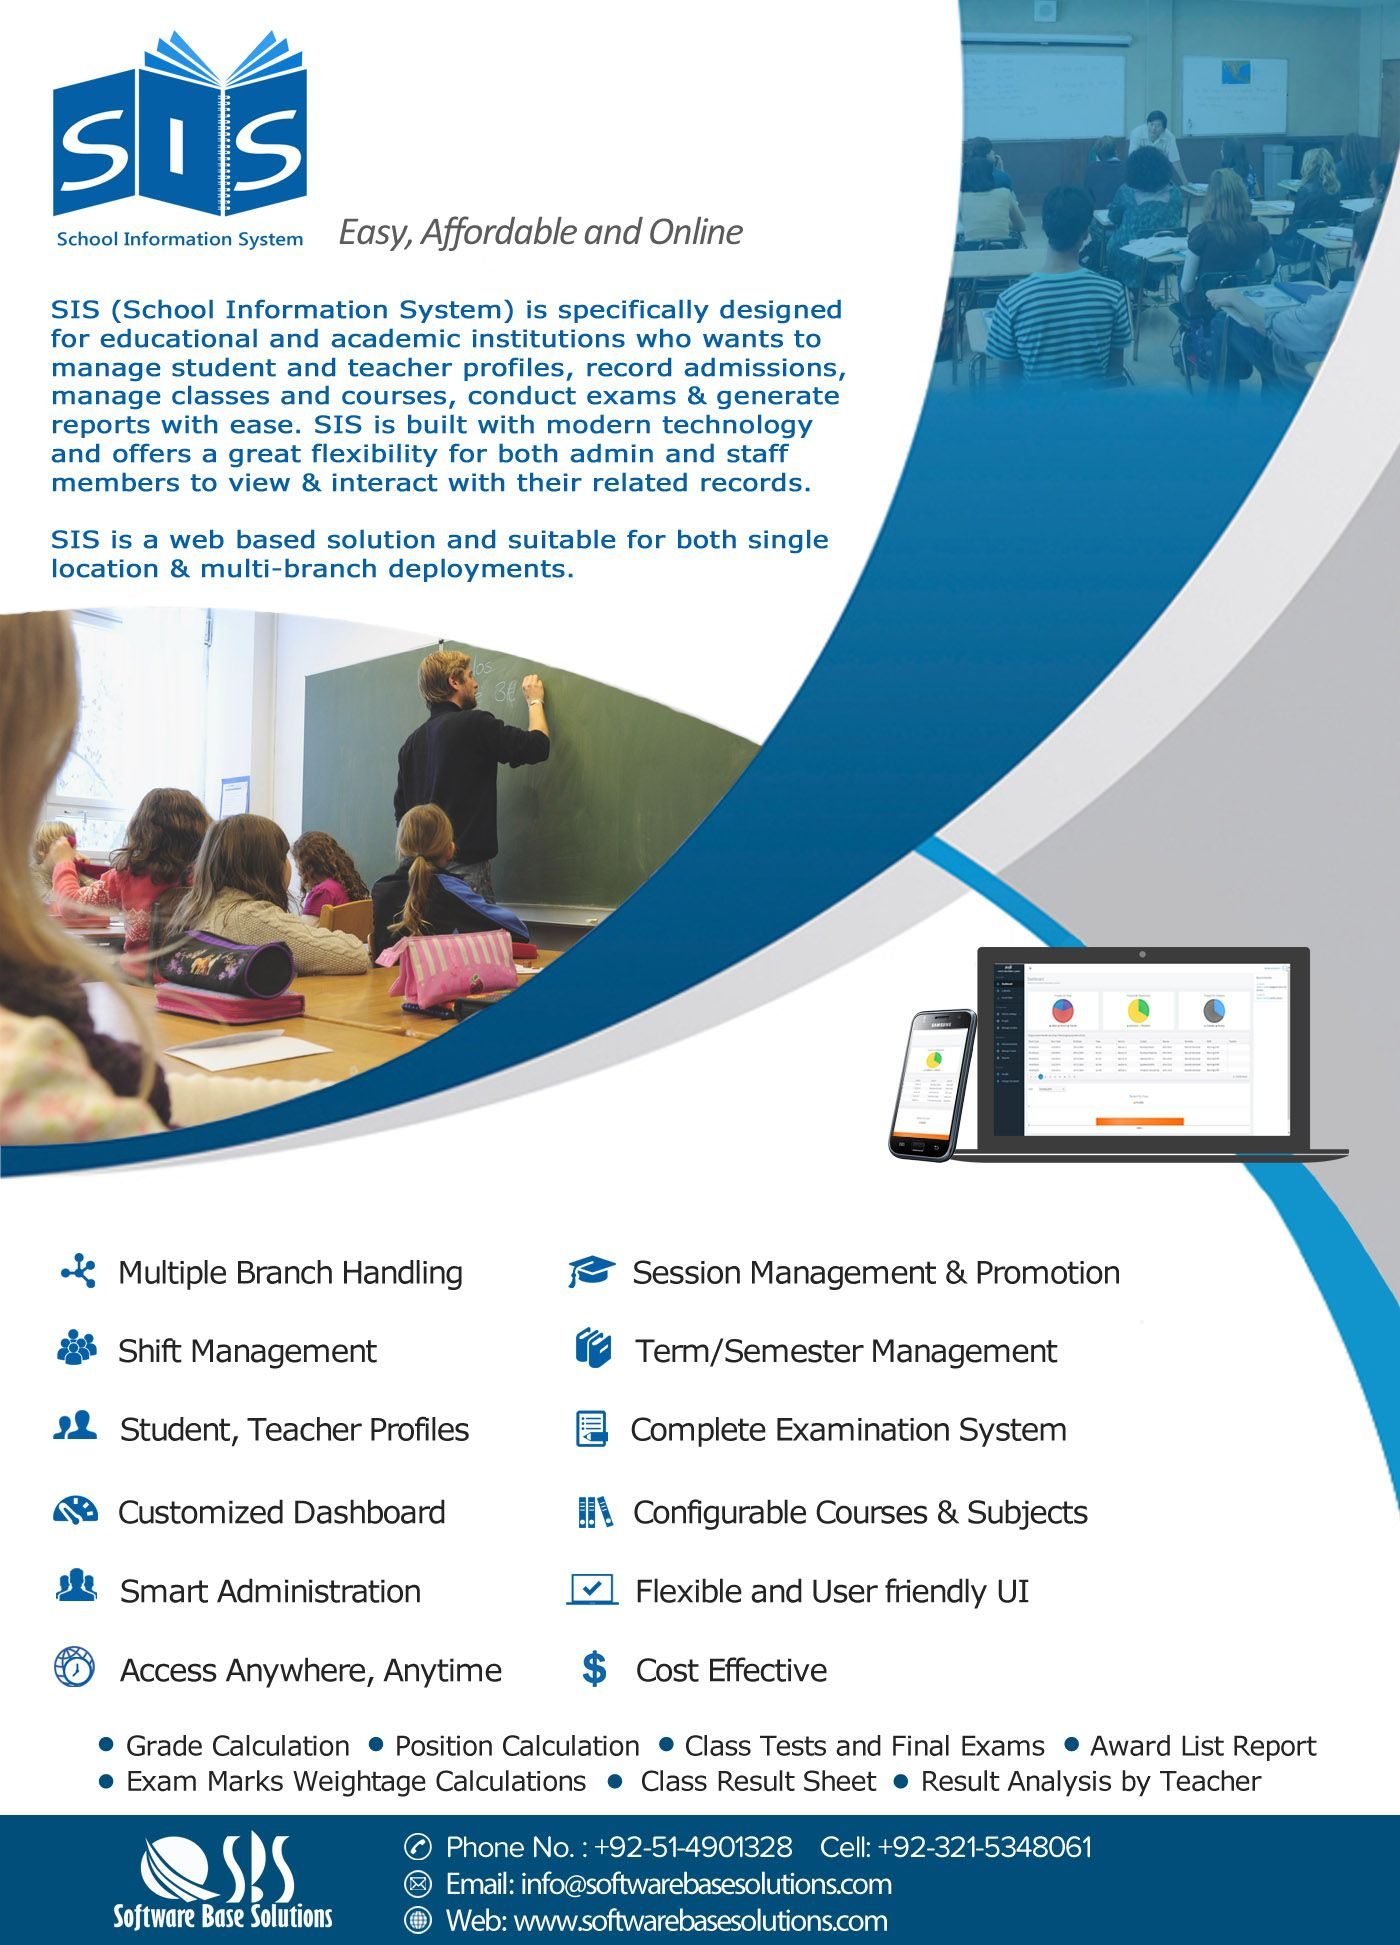 SIS (School Information System) is specially designed for